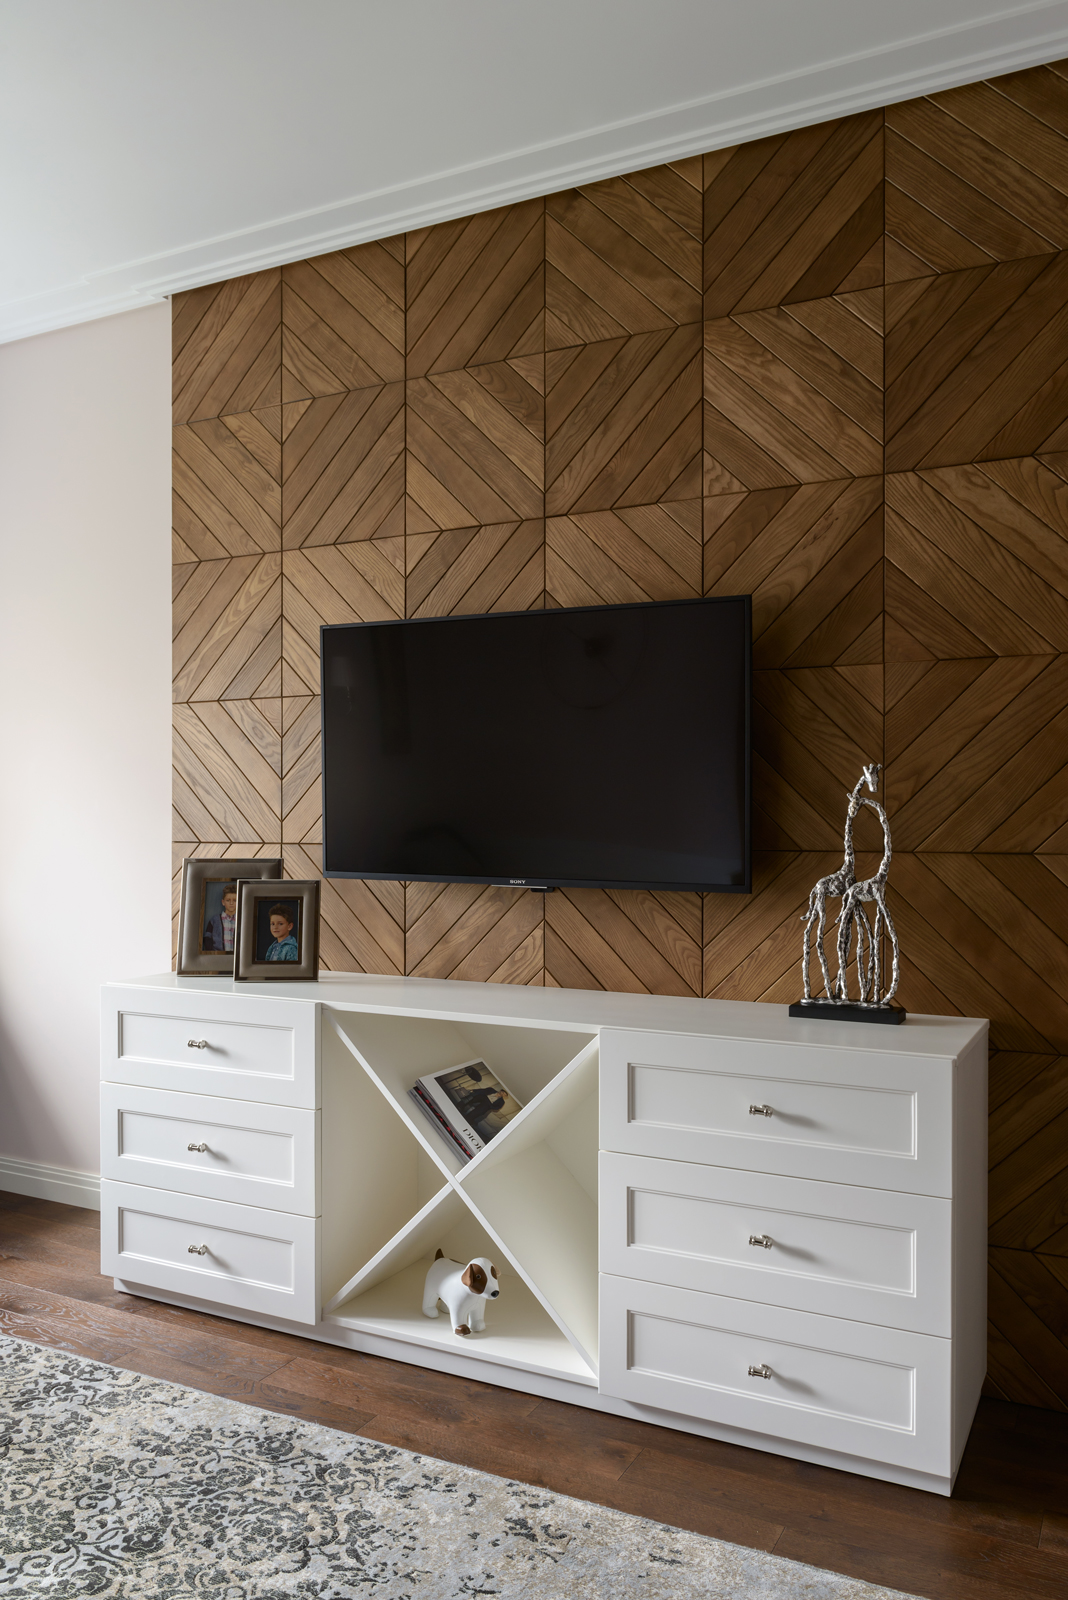 Wood Wall Paneling: 3D Rack Decorative Wooden Panel